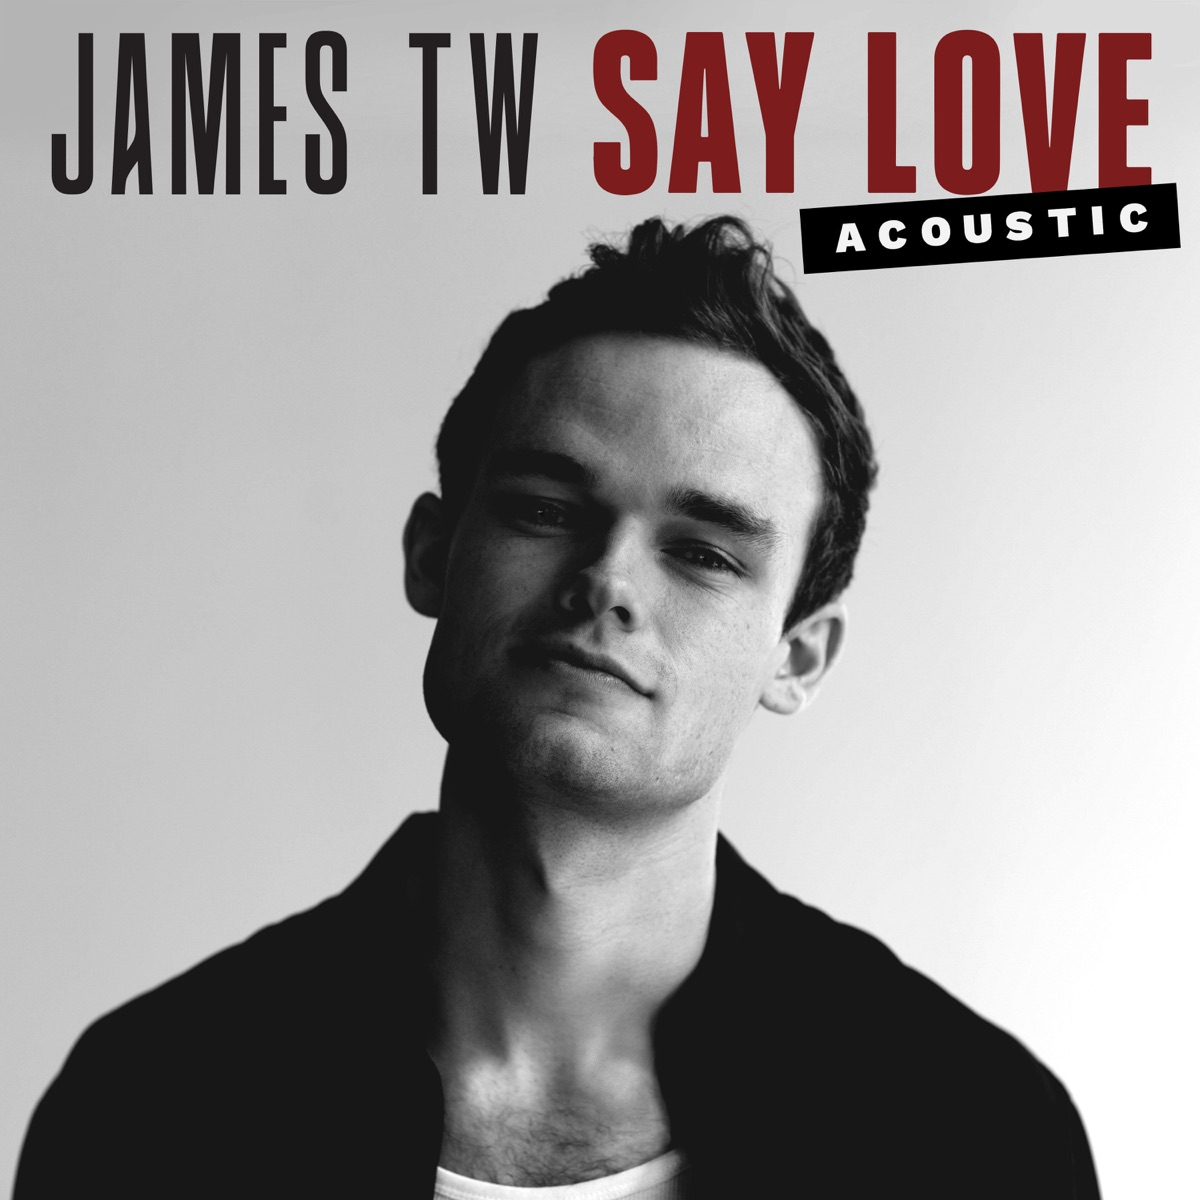 Say Love Album Cover by James TW